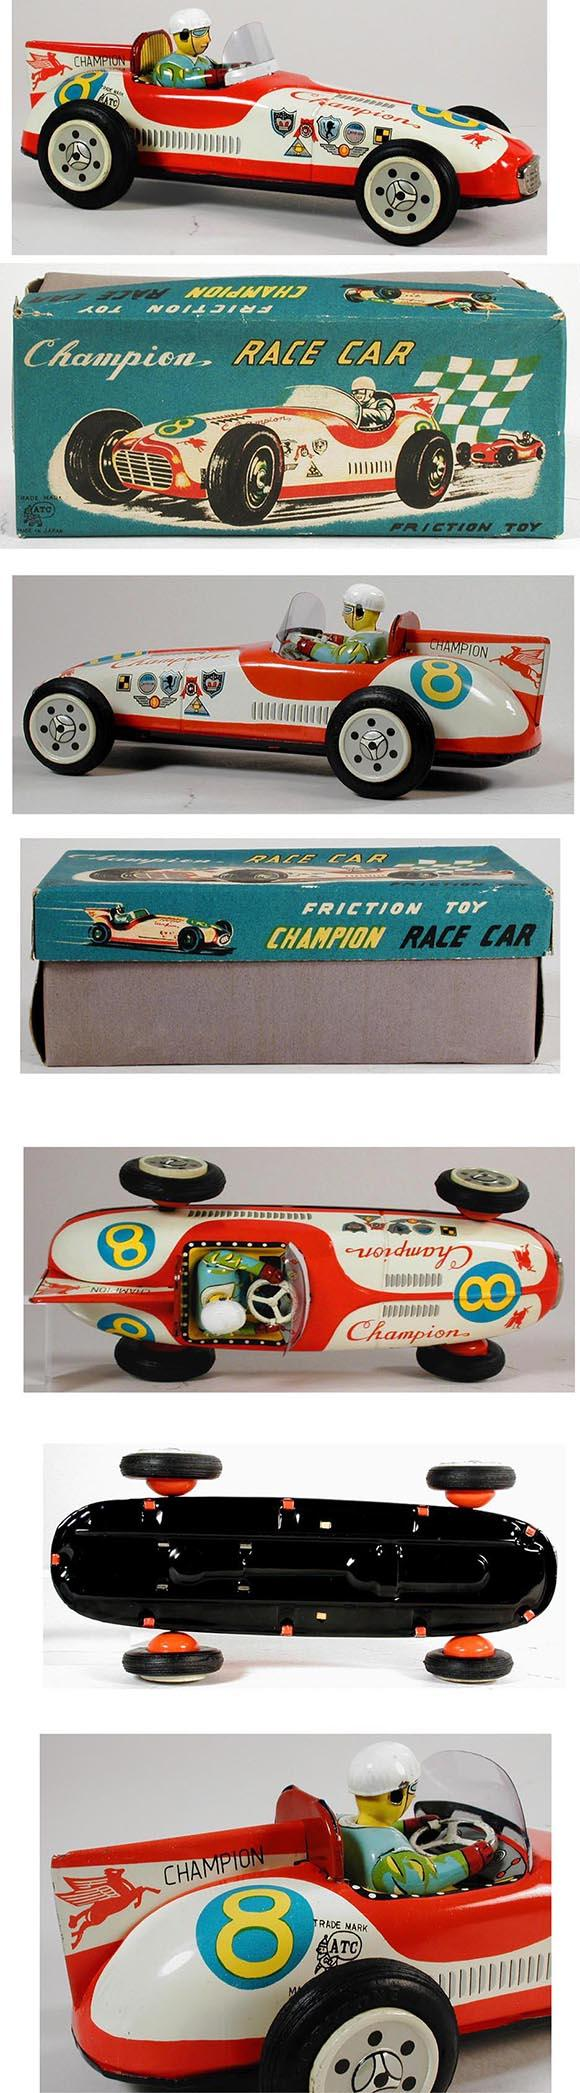 c.1960 Asahi, #8 Champion Race Car in Original Box